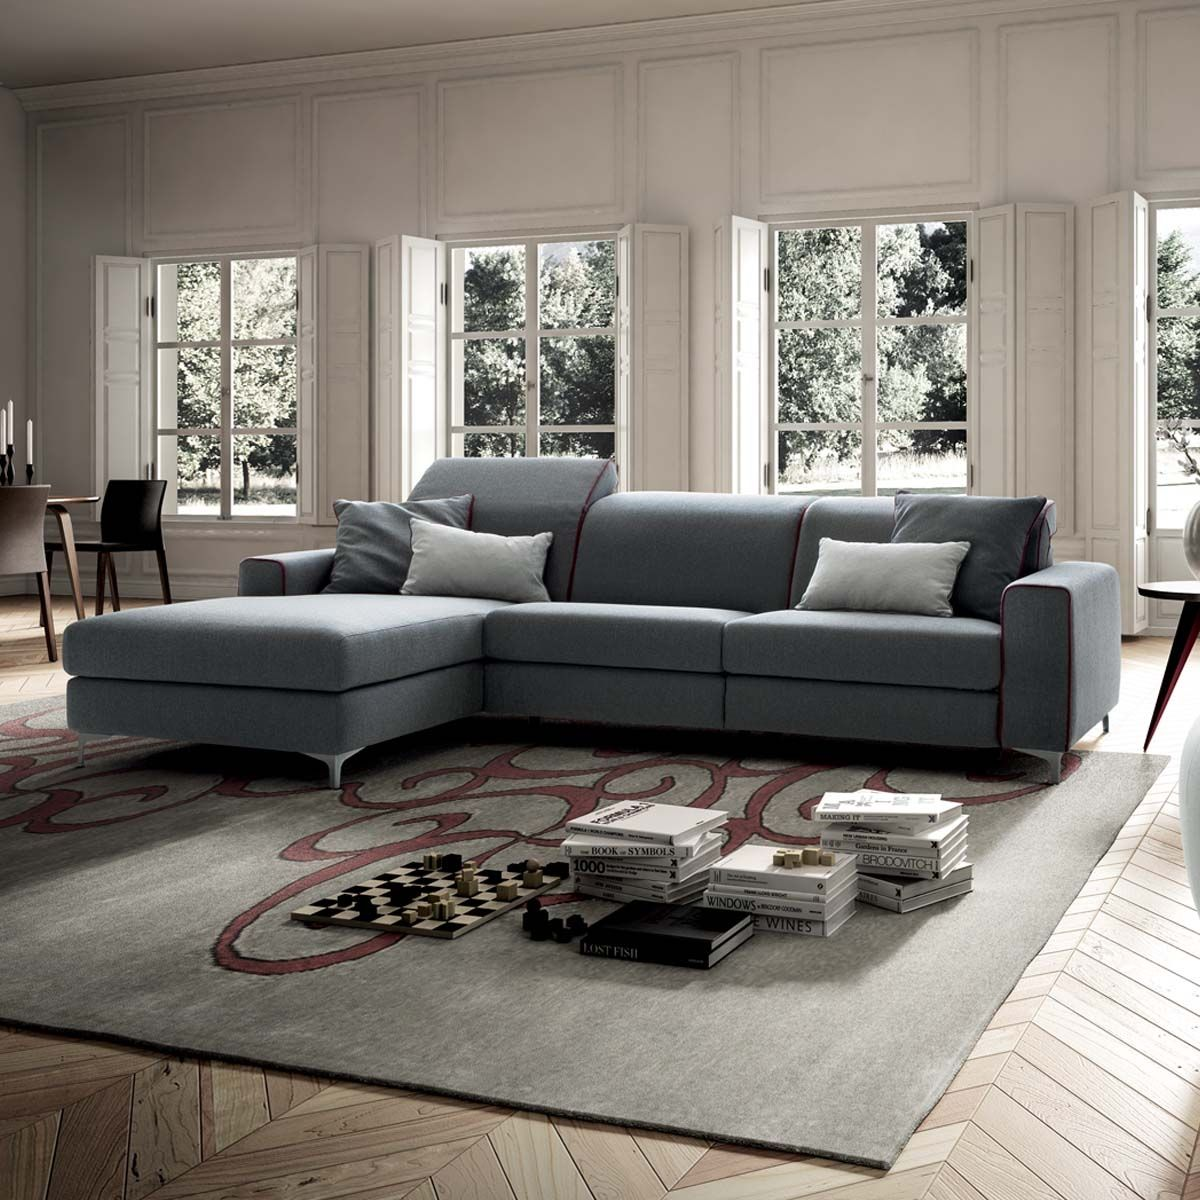 Divano con chaise longue drive in for Chaise longue divano